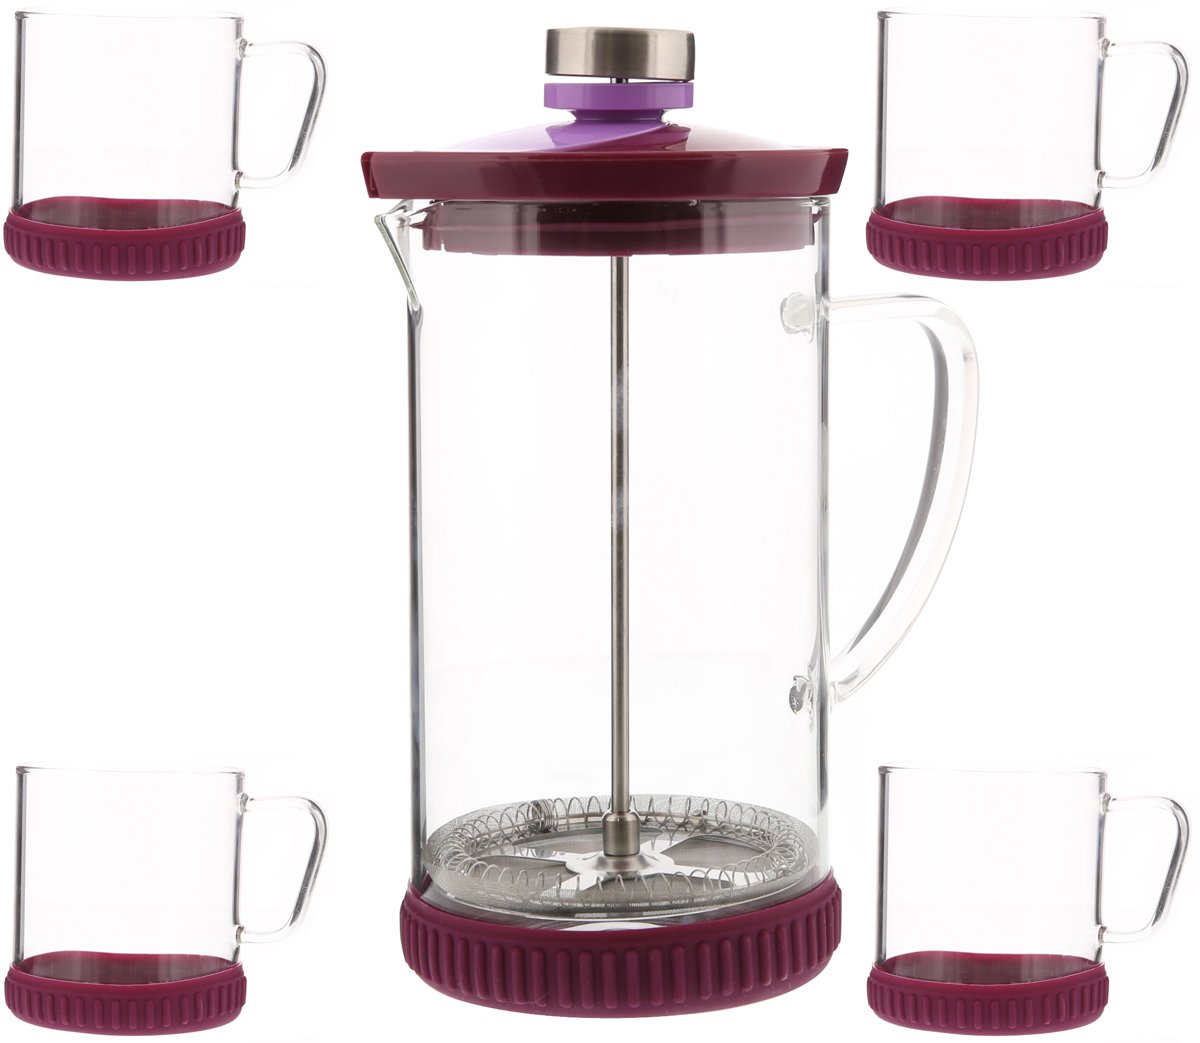 French Coffee Press - Coffee Maker - Glass Tea Infuser with 4 Cups - Color May Vary